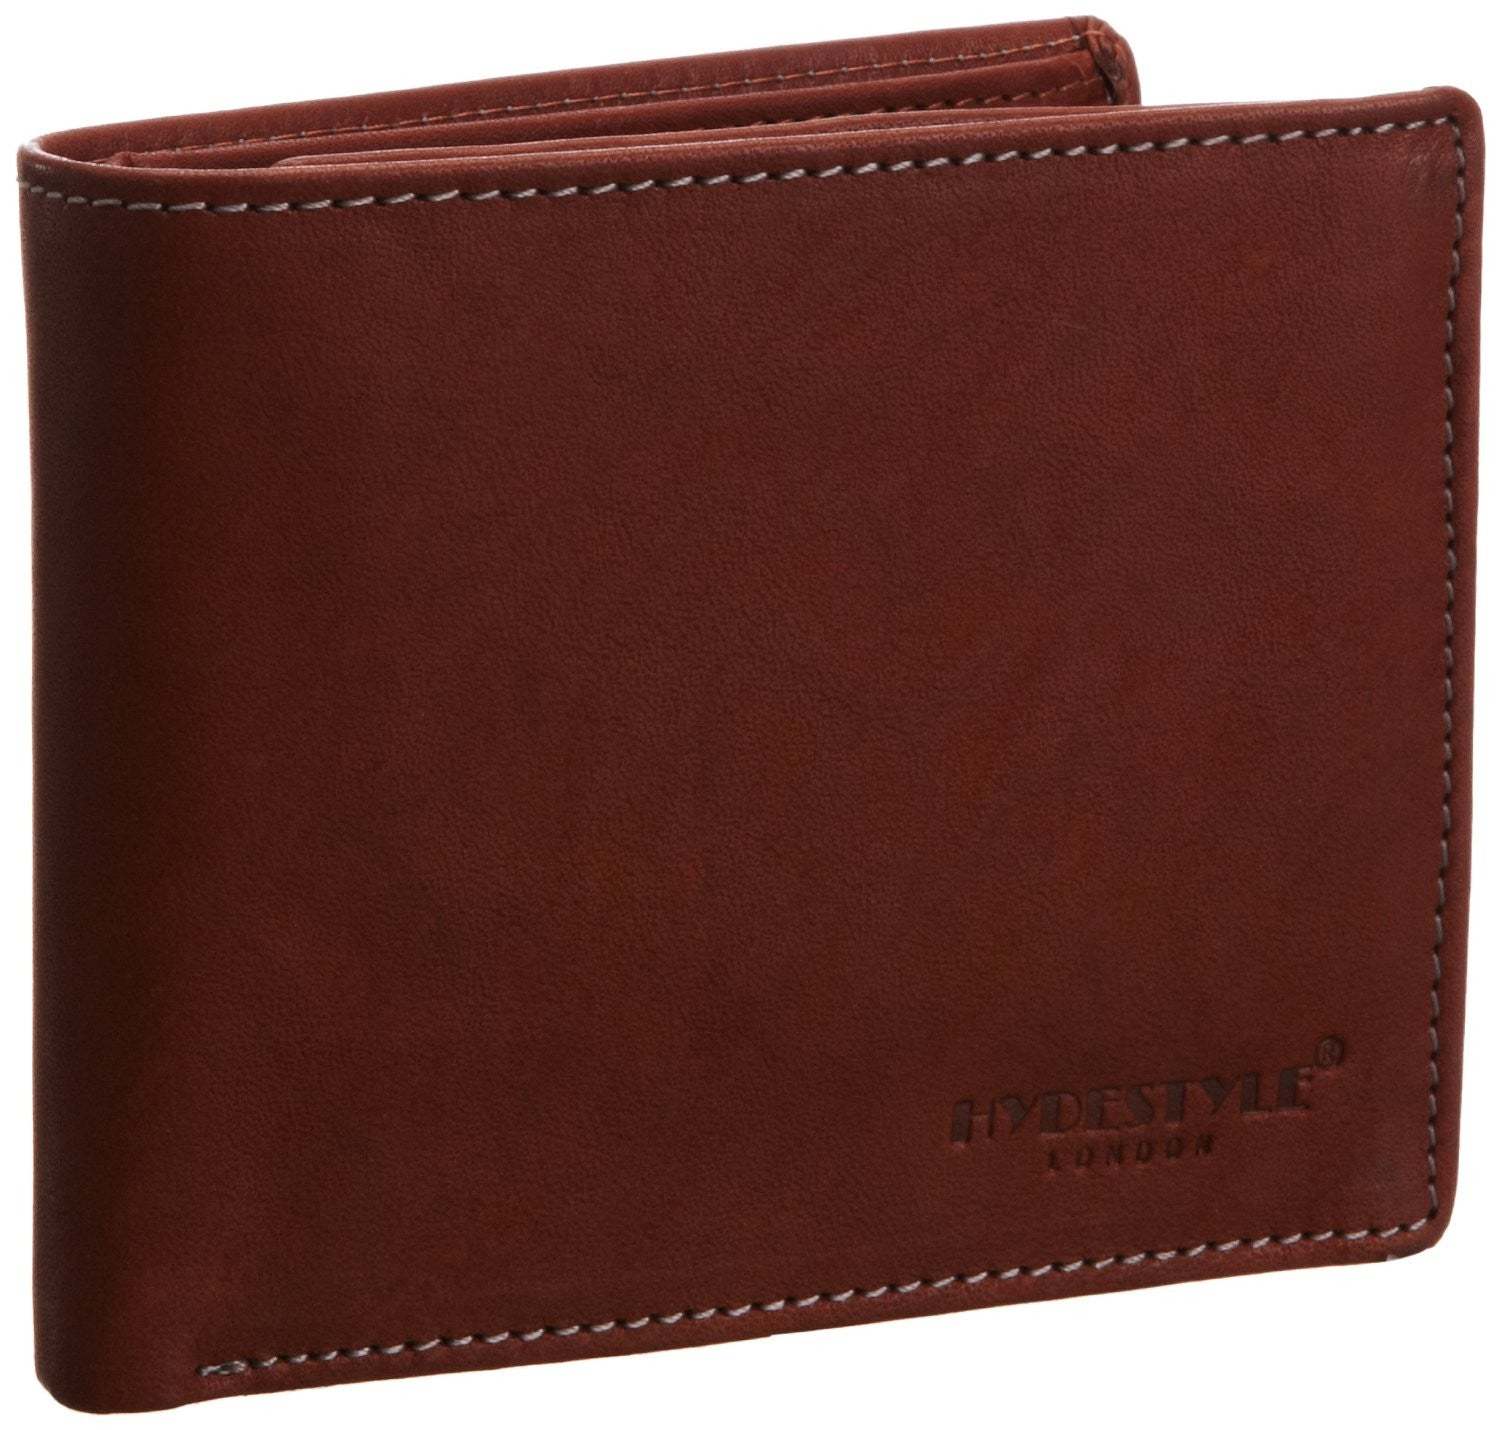 Pratico - mens ID pullout leather trifold wallet #GW51 Cognac